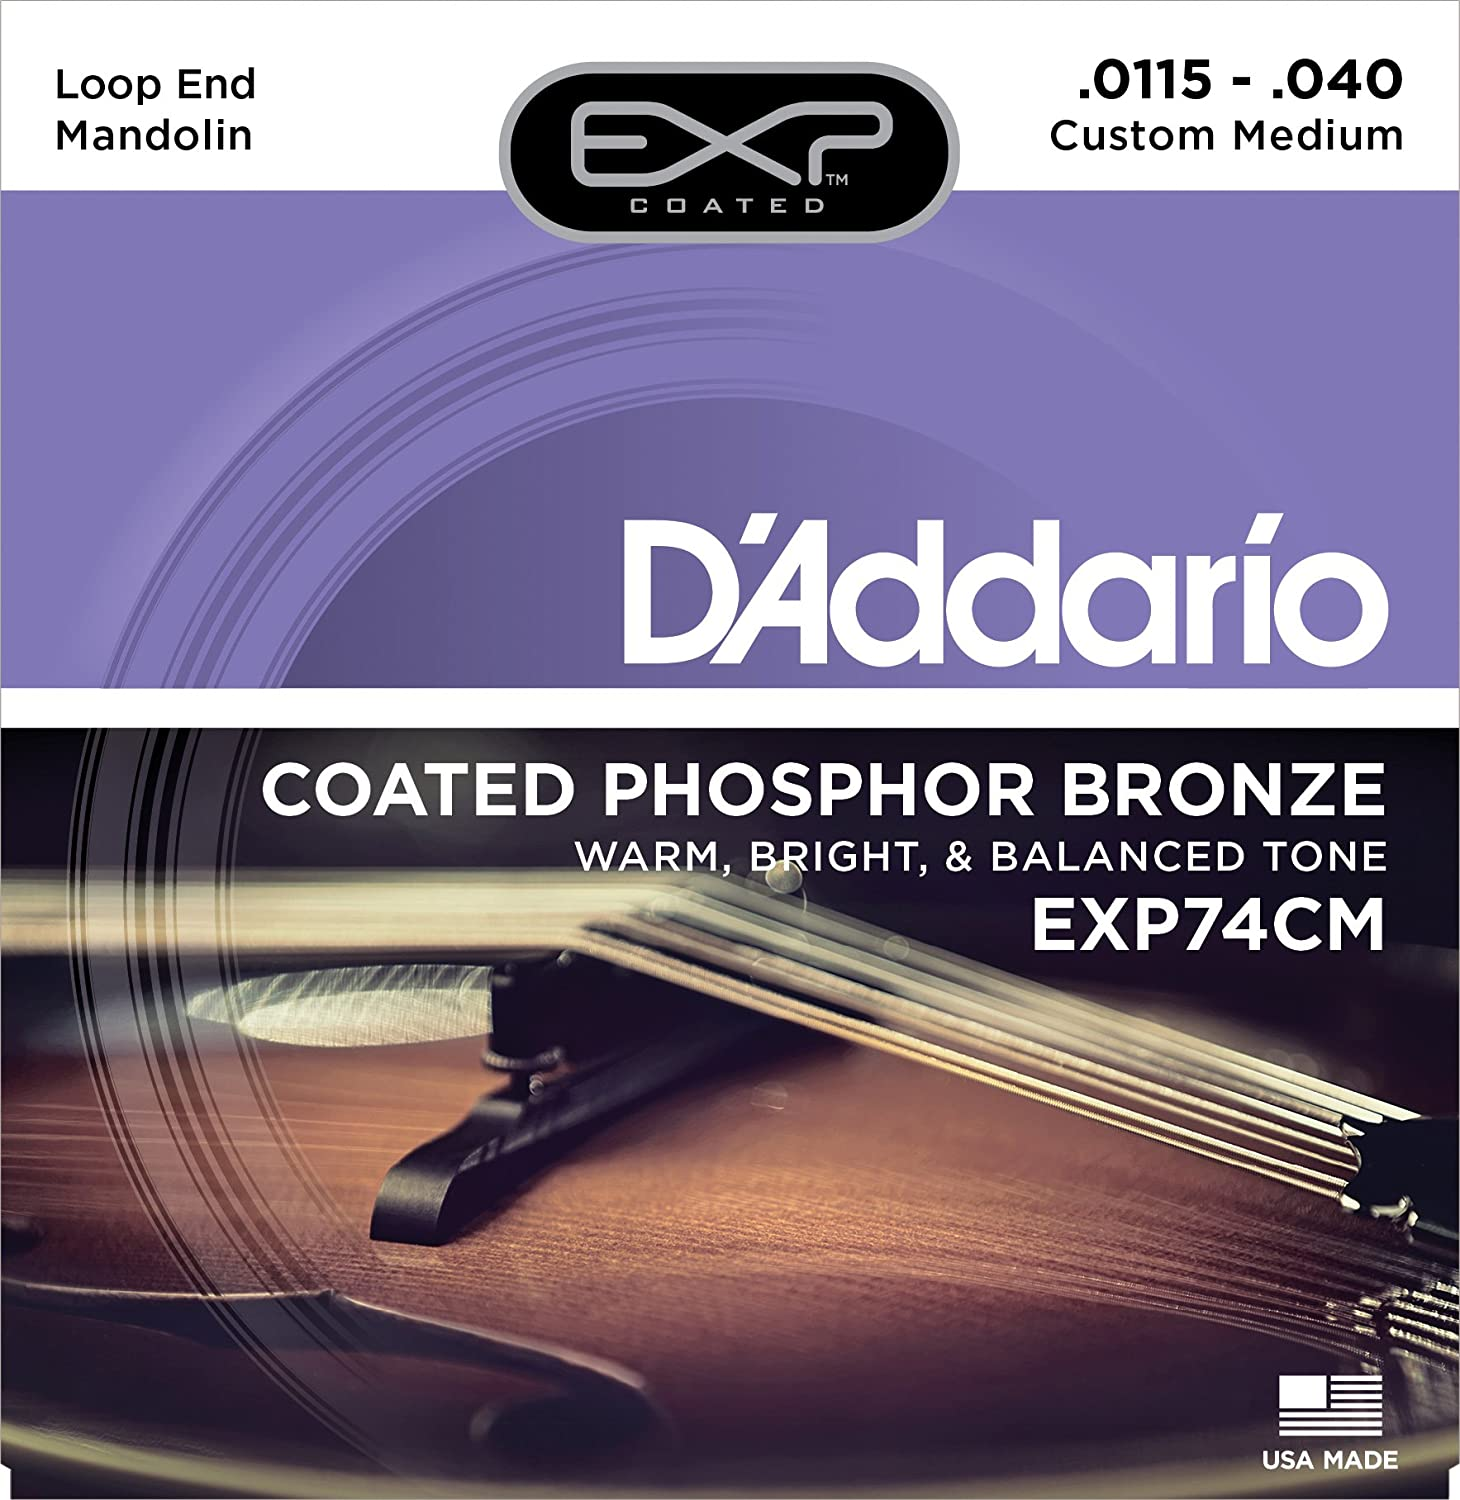 D'Addario EXP74 Coated Phosphor Bronze Mandolin Strings, Medium, 11-40 D'Addario &Co. Inc